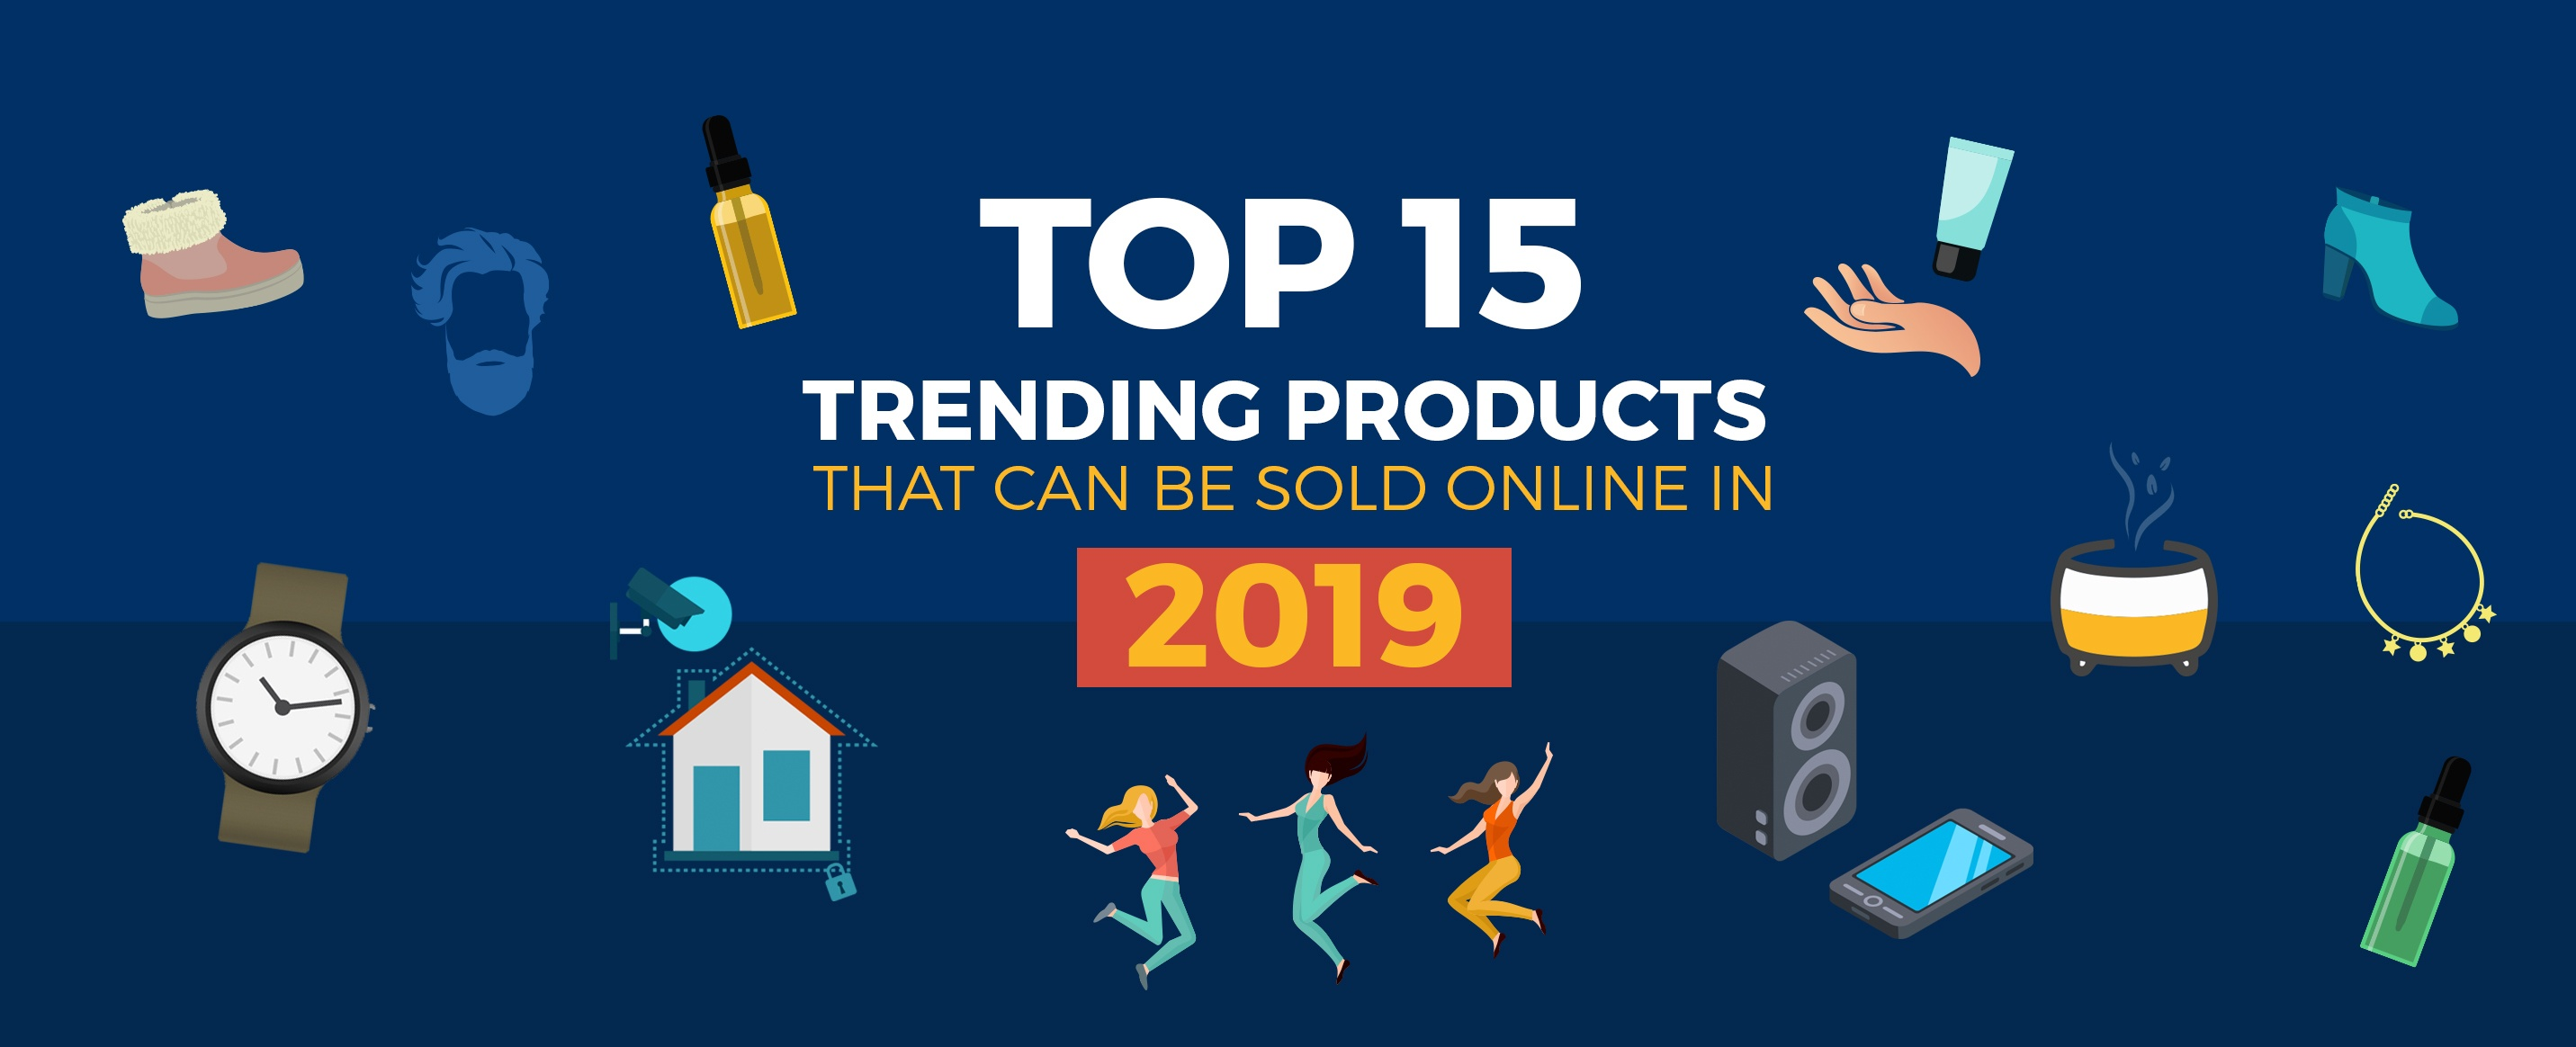 Top-15-Trending-Products-That-Can-be-Sold-Online-in-2019 (1)